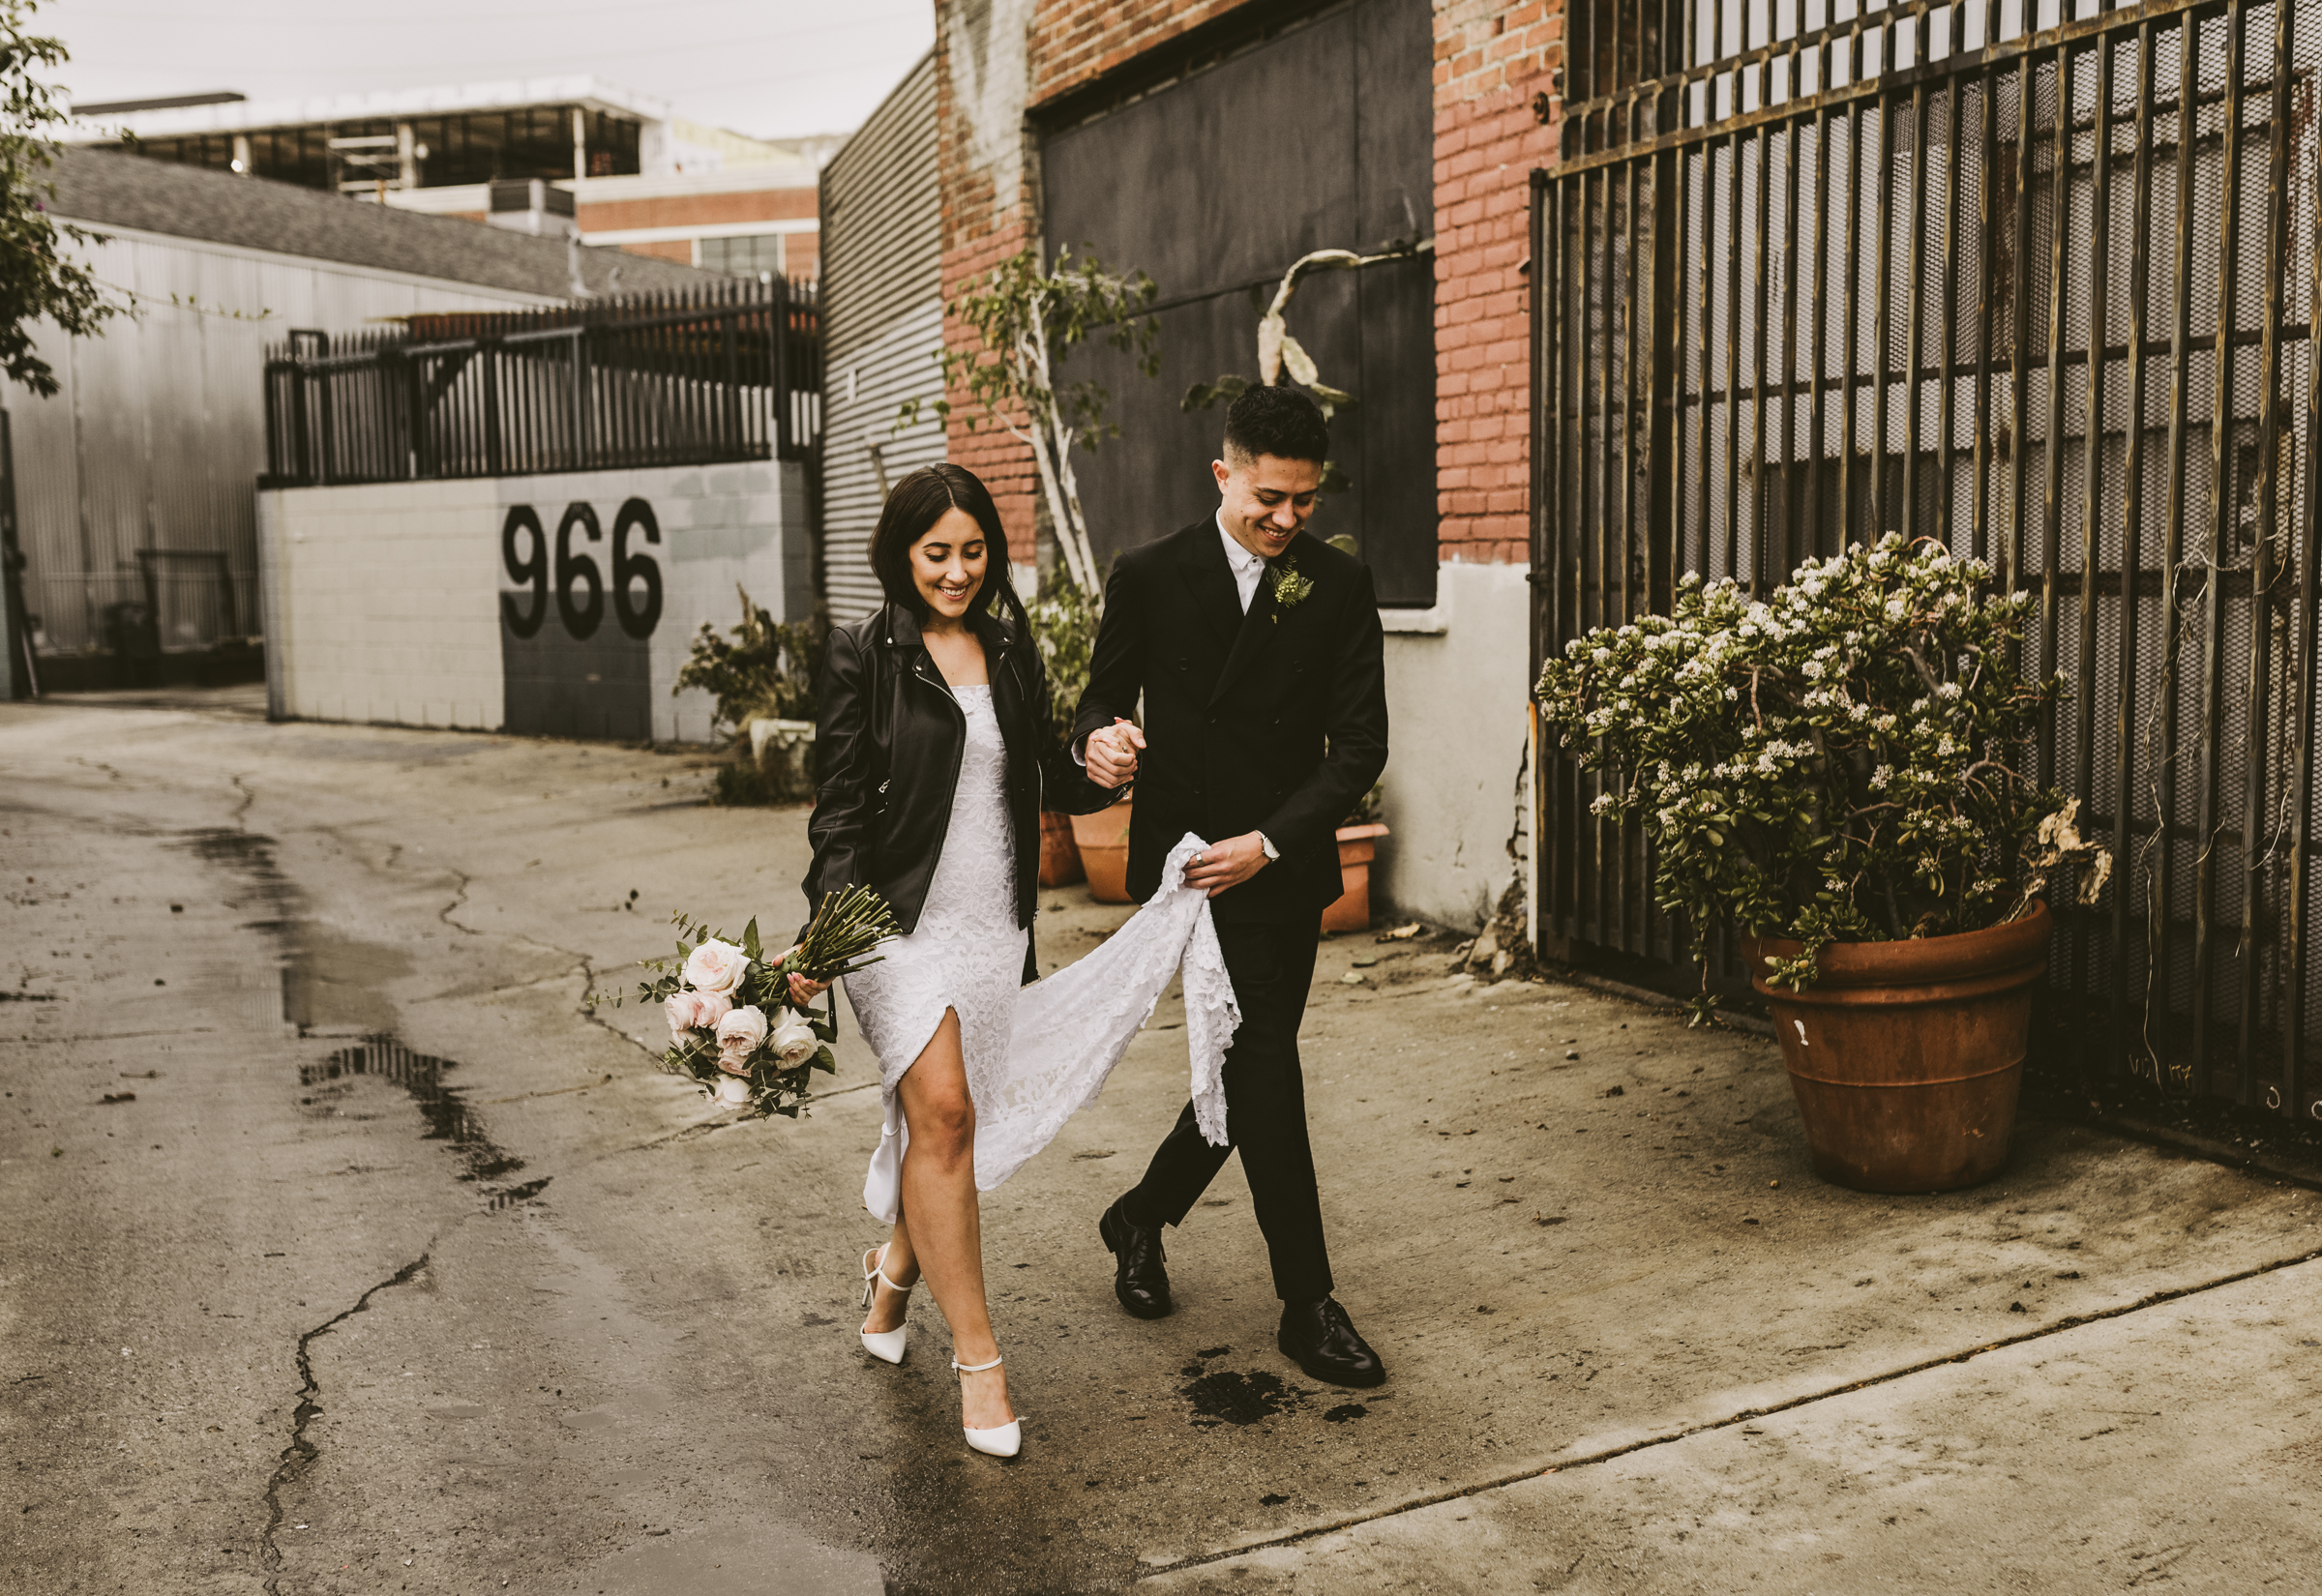 ©Isaiah + Taylor Photography - Millwick Wedding, Downtown Los Angeles-81.jpg